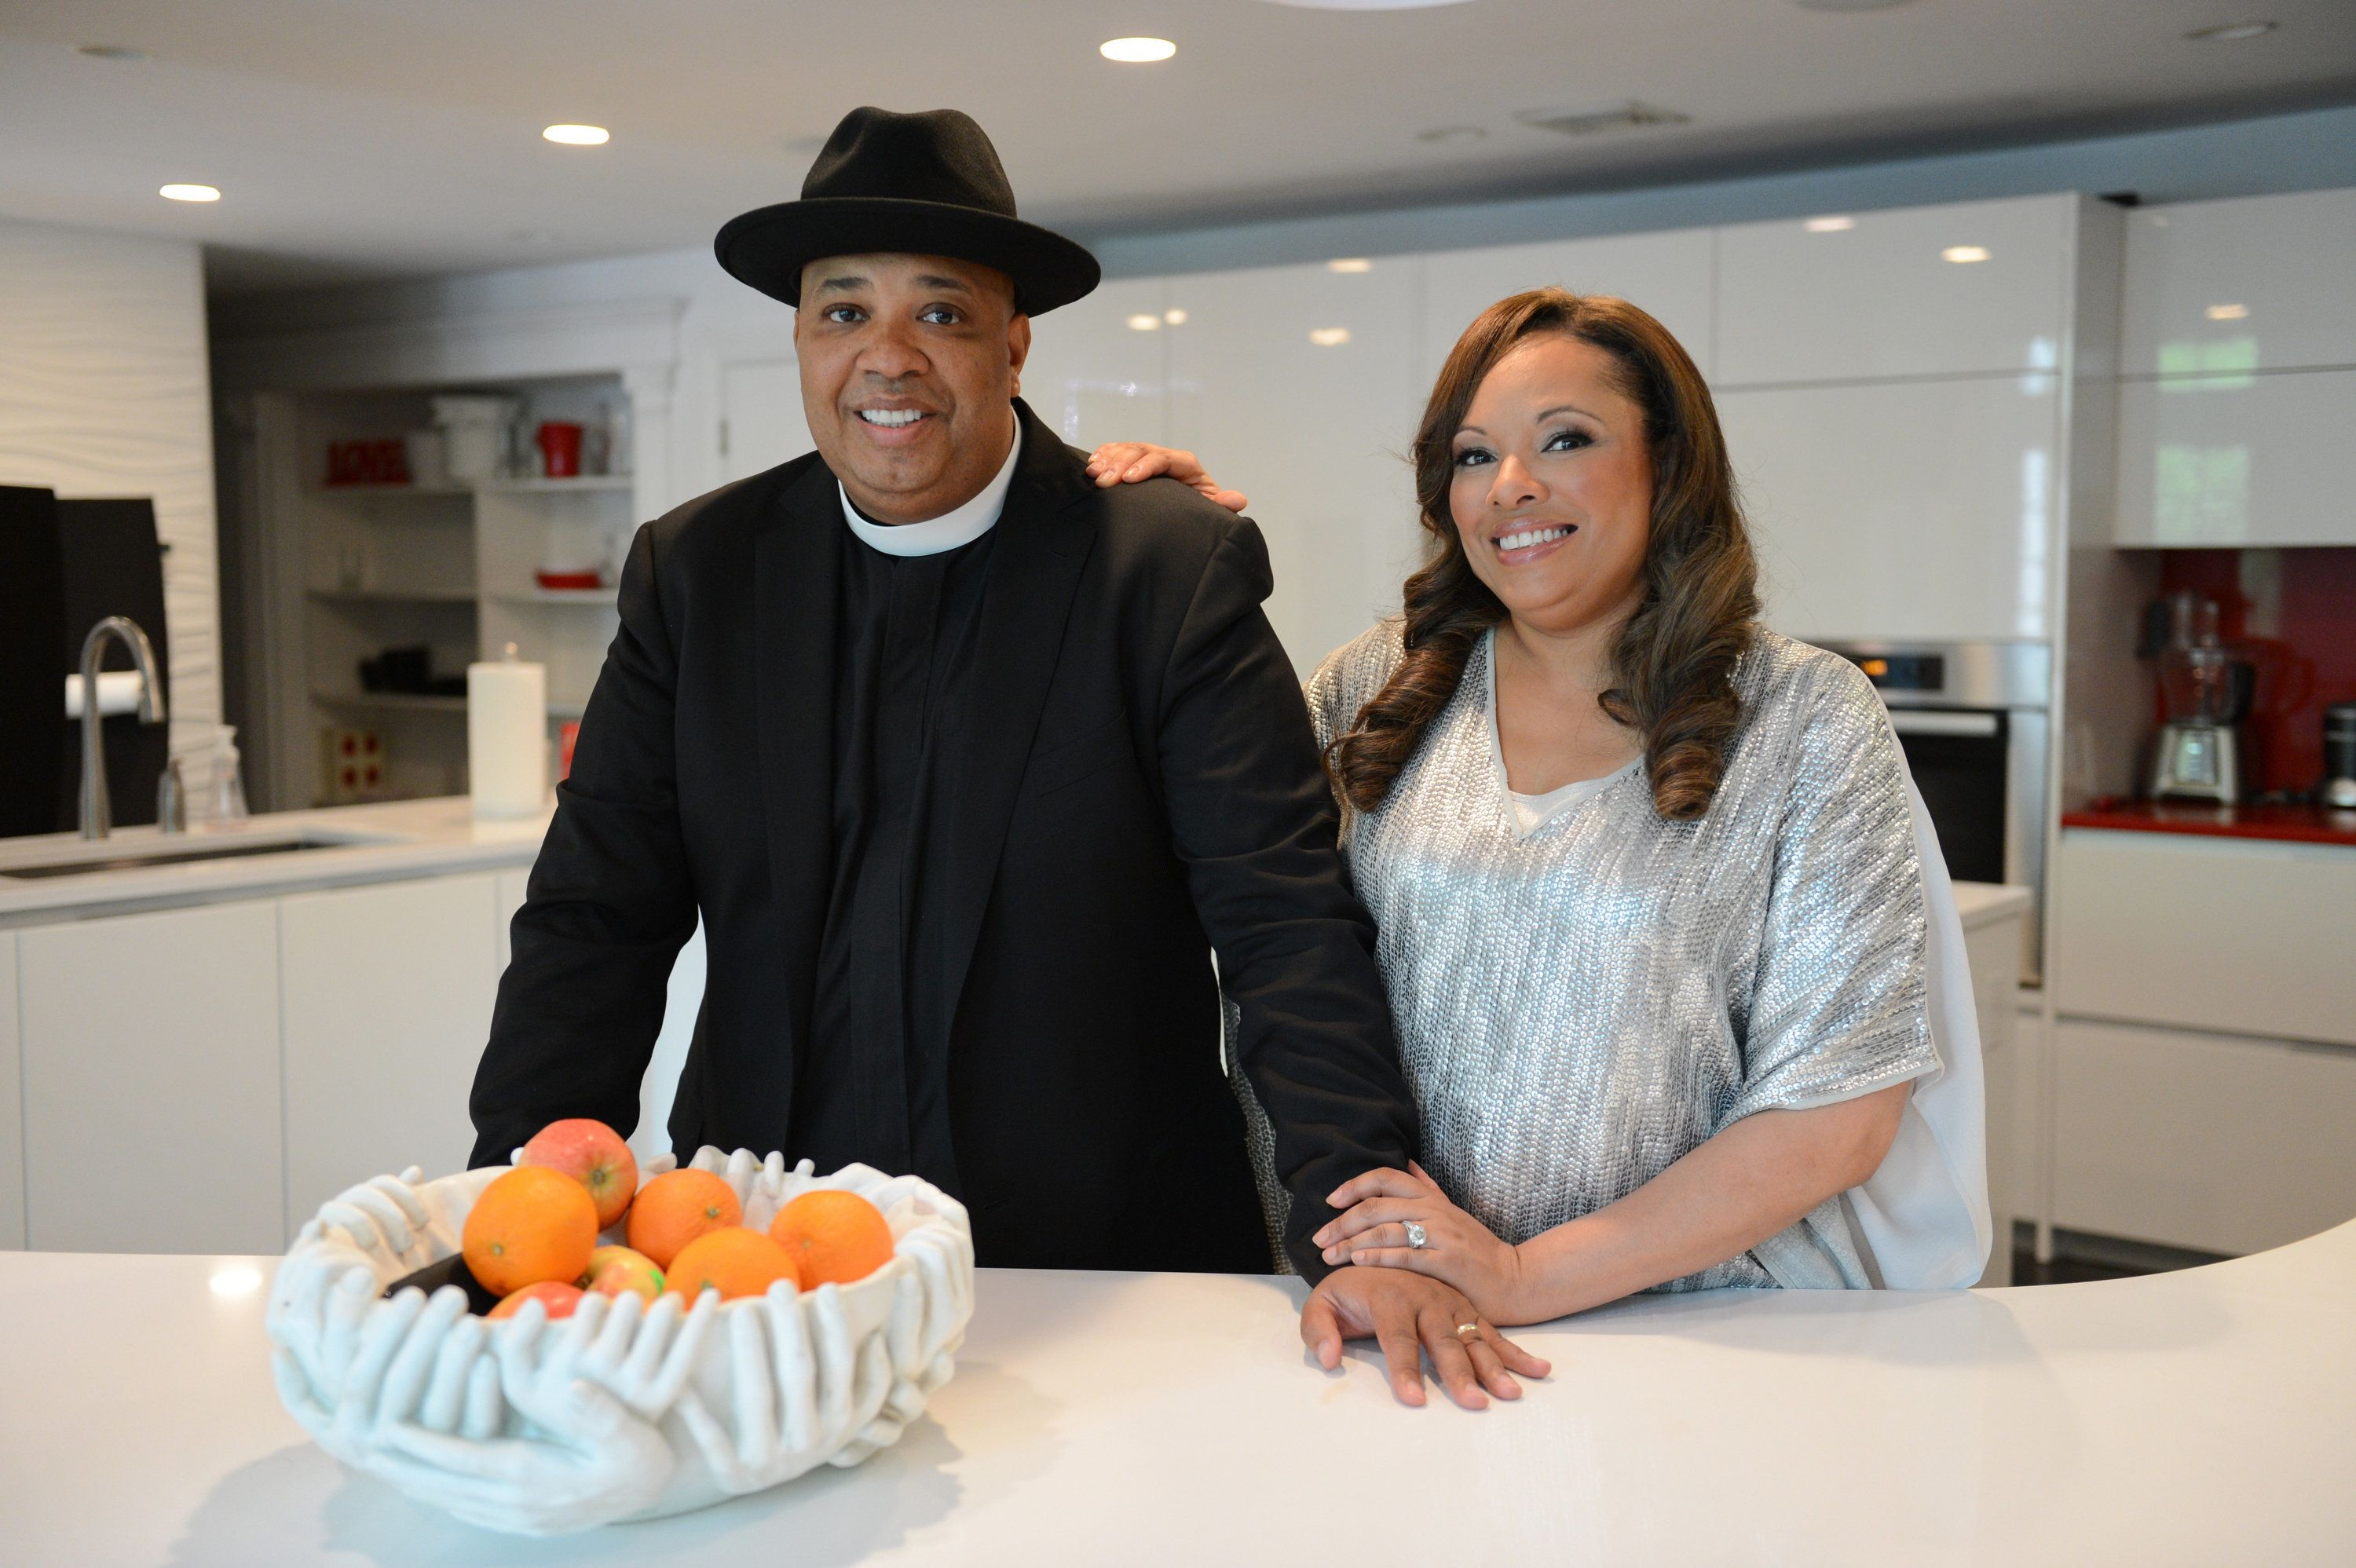 Rev Run and his wife Justine are going to be in a show Rev Run's Sunday Suppers on the Cooking Channel with their children Russy Jr and Miley. Photo taken at their home in Saddle River New jersey on May 23, 2014.  (Photo By: Julia Xanthos/NY Daily News via Getty Images)